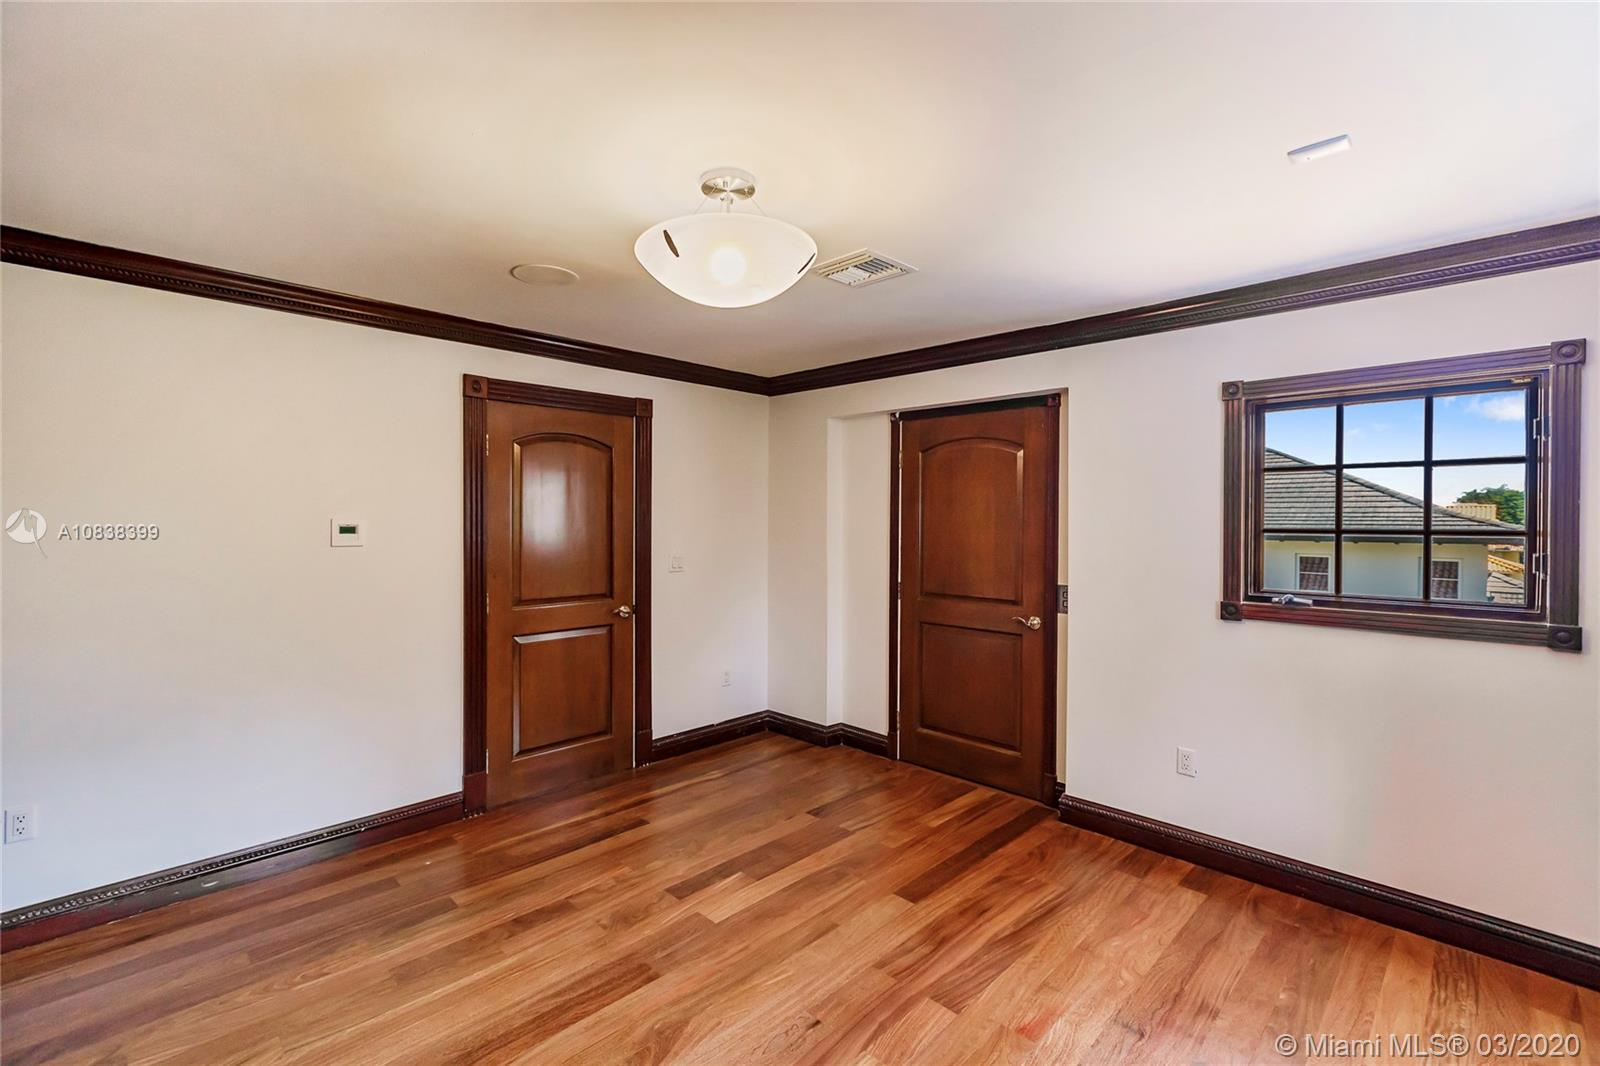 1541 S Agua Ave, Coral Gables, Florida 33156, 6 Bedrooms Bedrooms, 1 Room Rooms,7 BathroomsBathrooms,Residential,For Sale,1541 S Agua Ave,A10838399